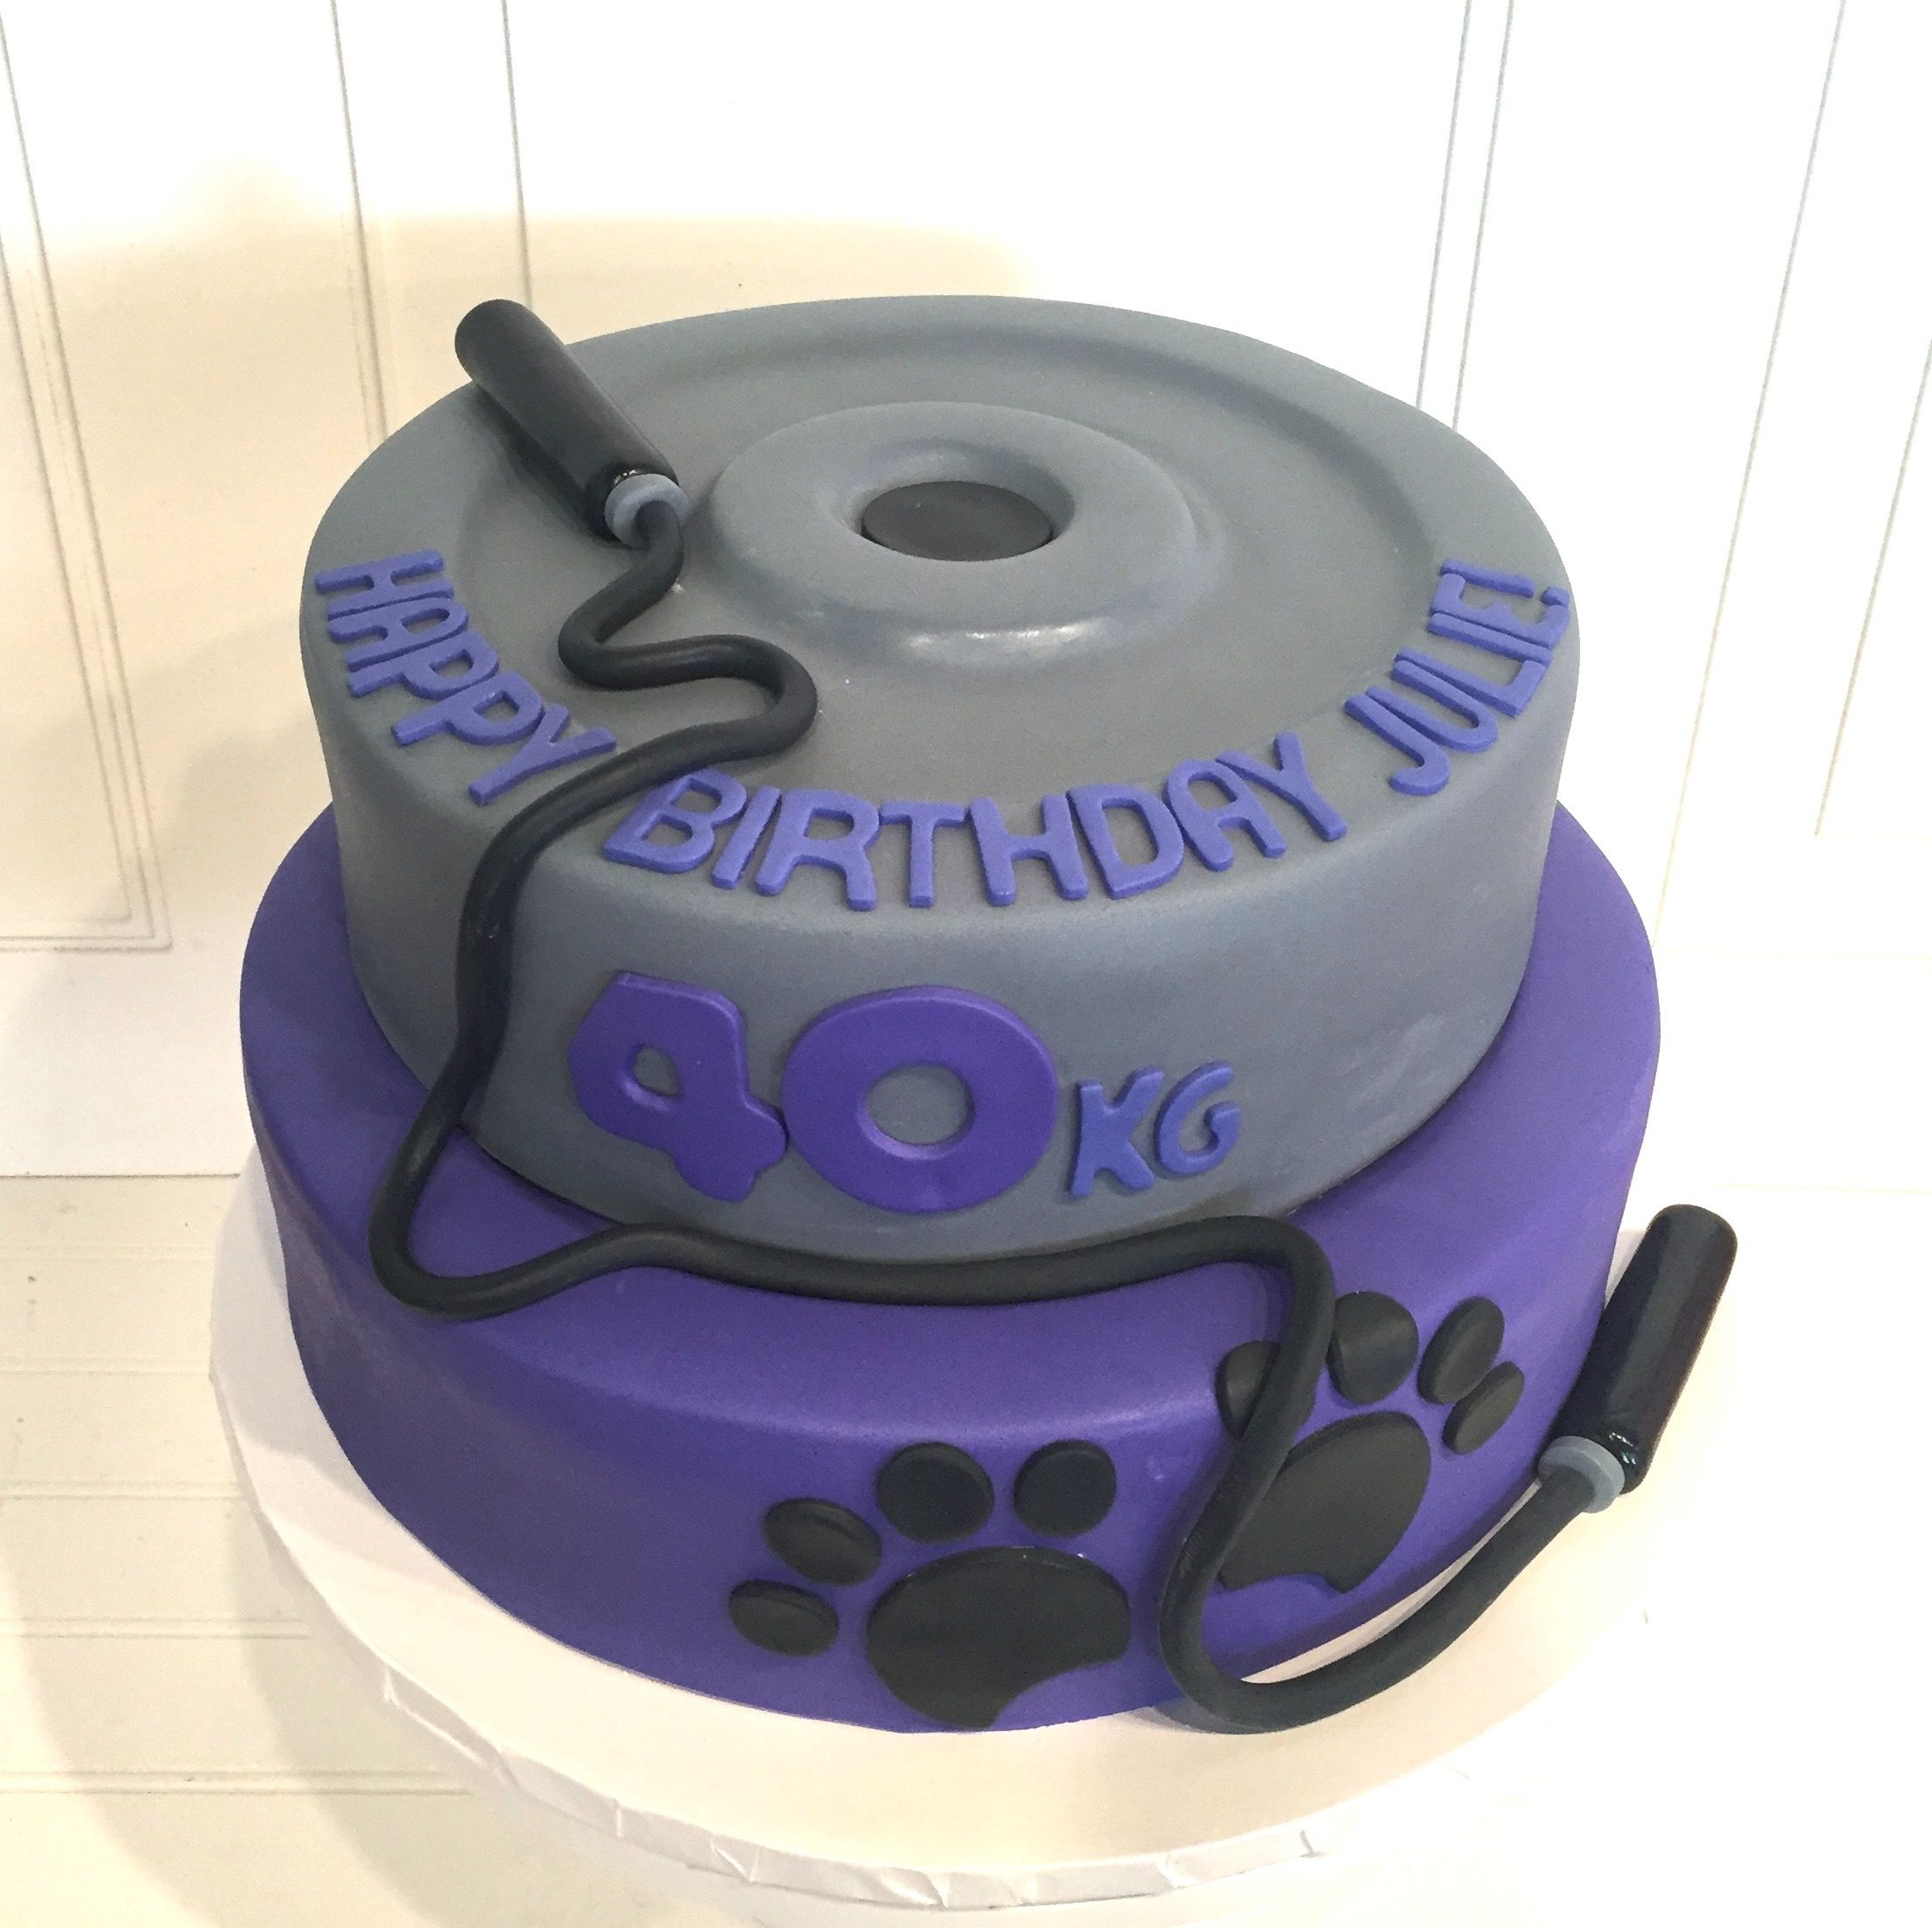 Pleasing Weight Training Cake With Images Cake Girl Cakes Specialty Cakes Personalised Birthday Cards Paralily Jamesorg